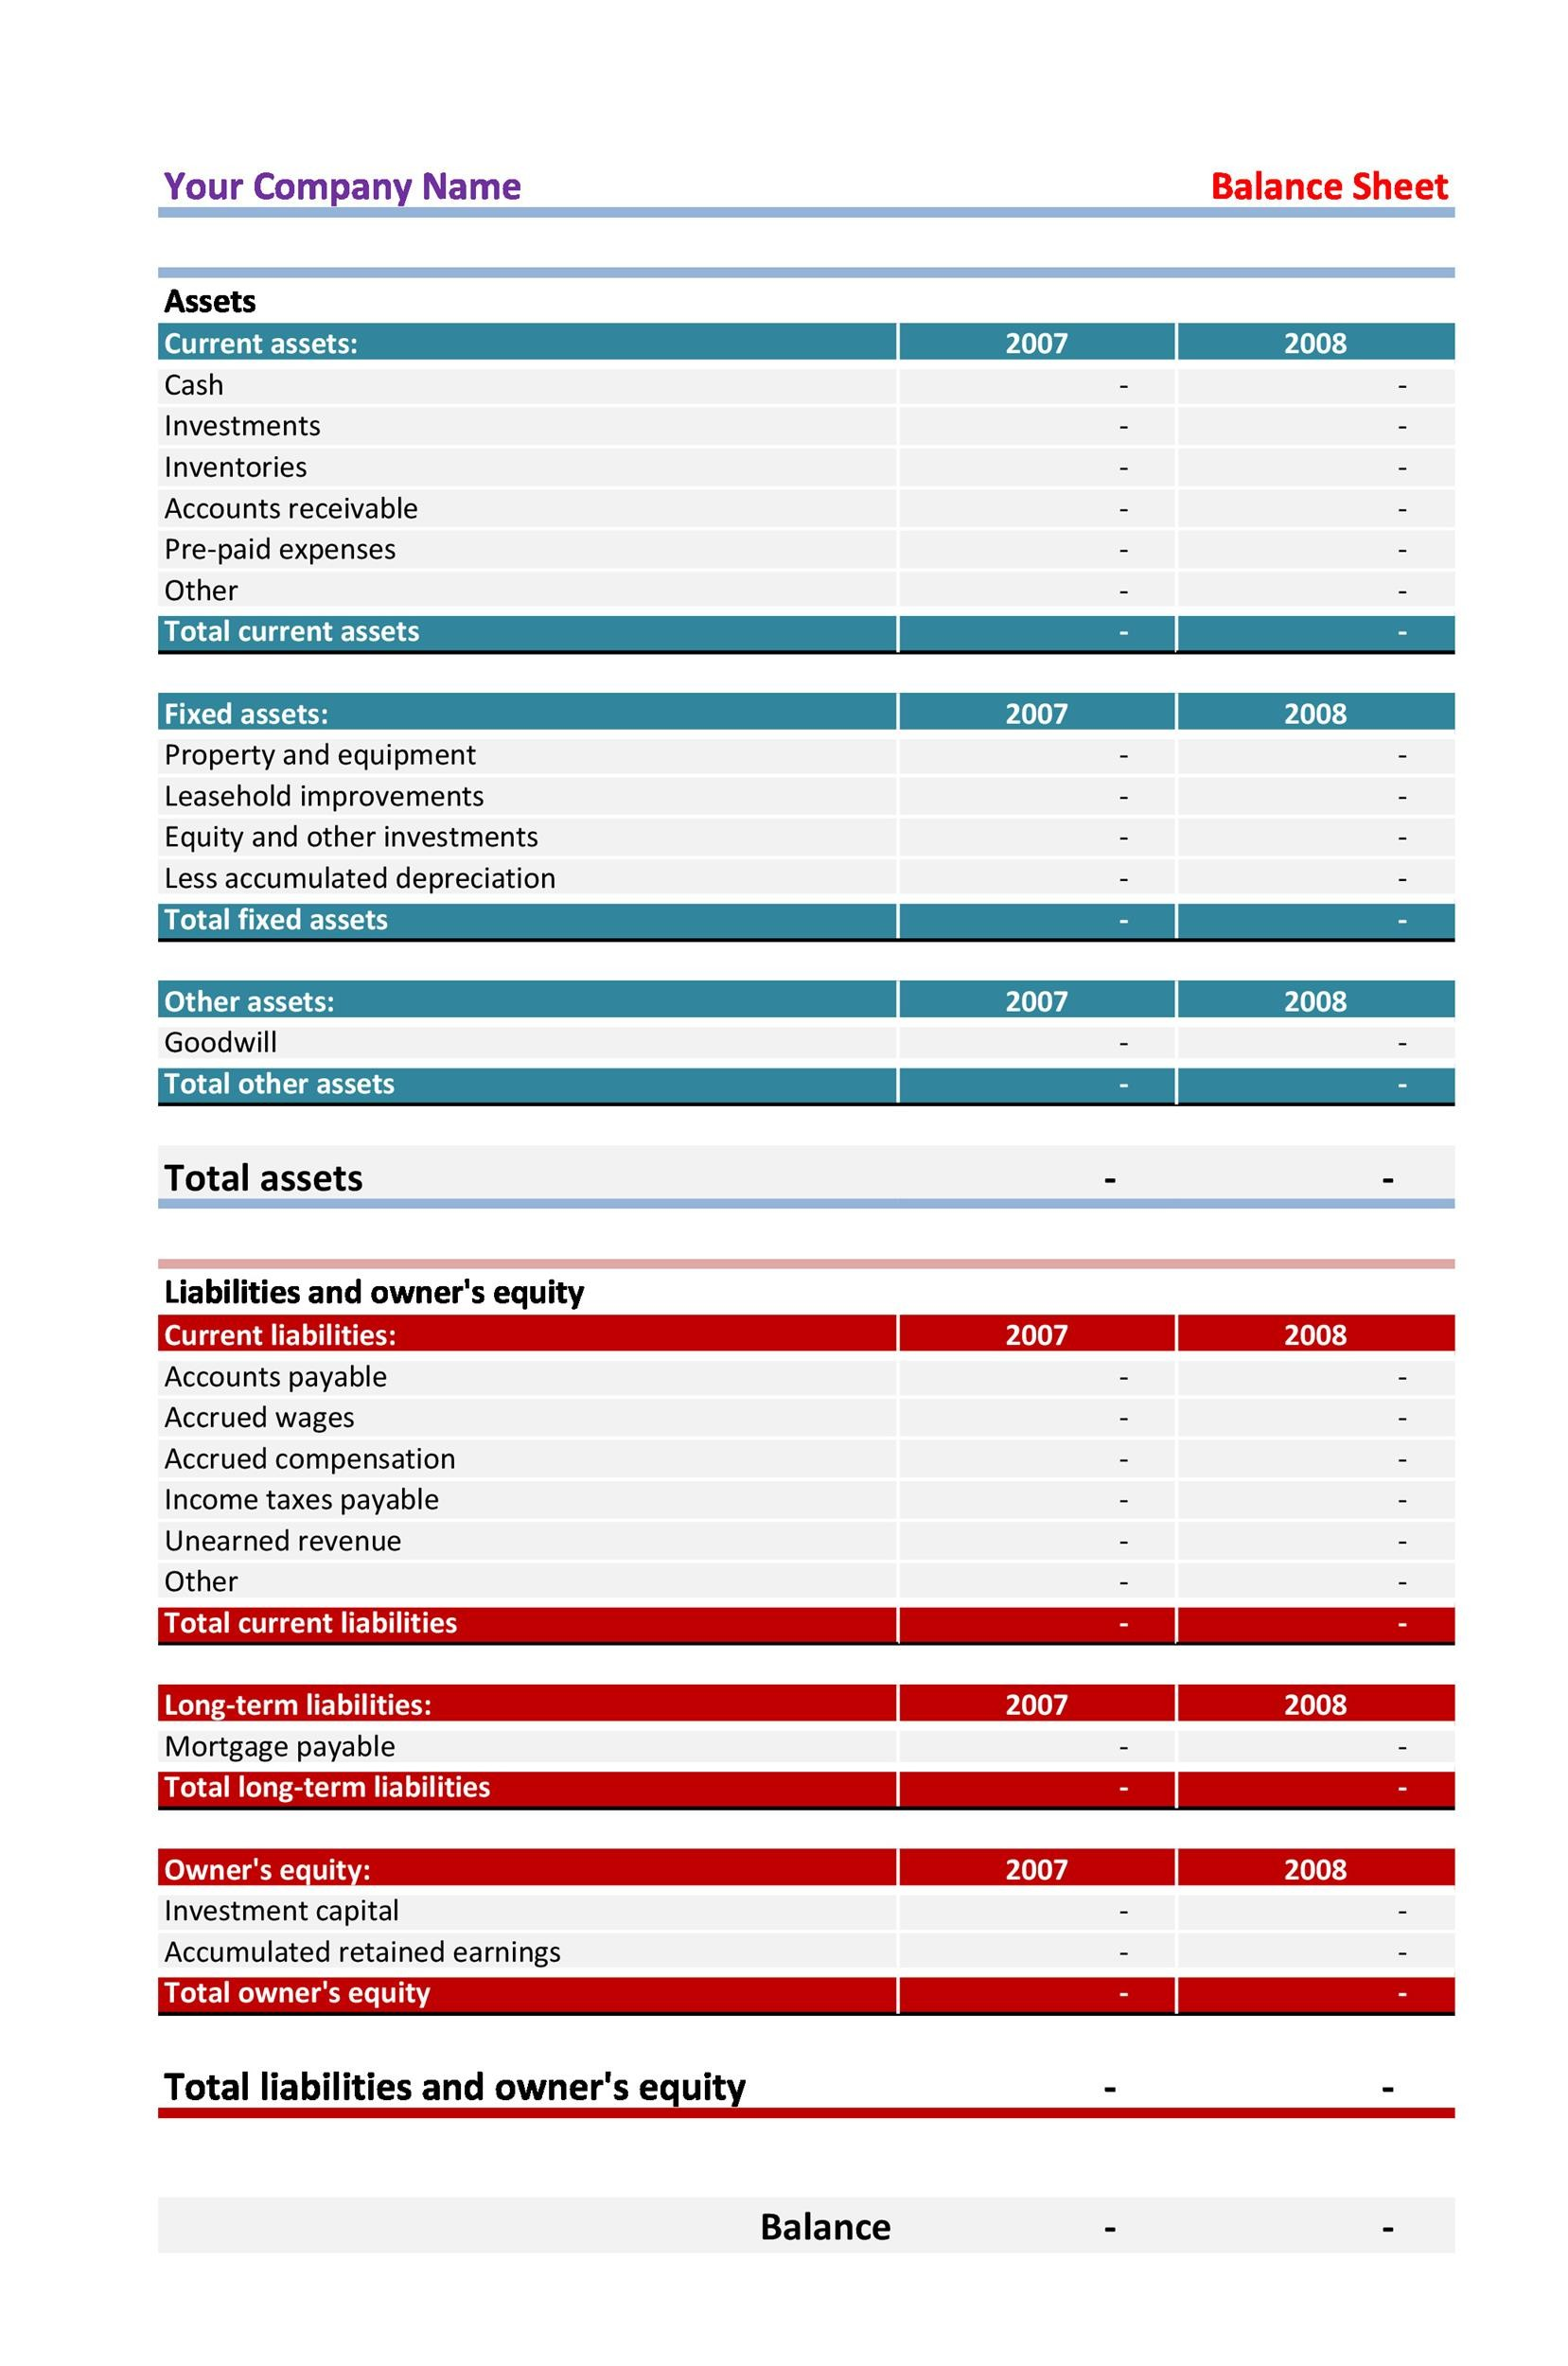 38 Free Balance Sheet Templates & Examples - Template Lab